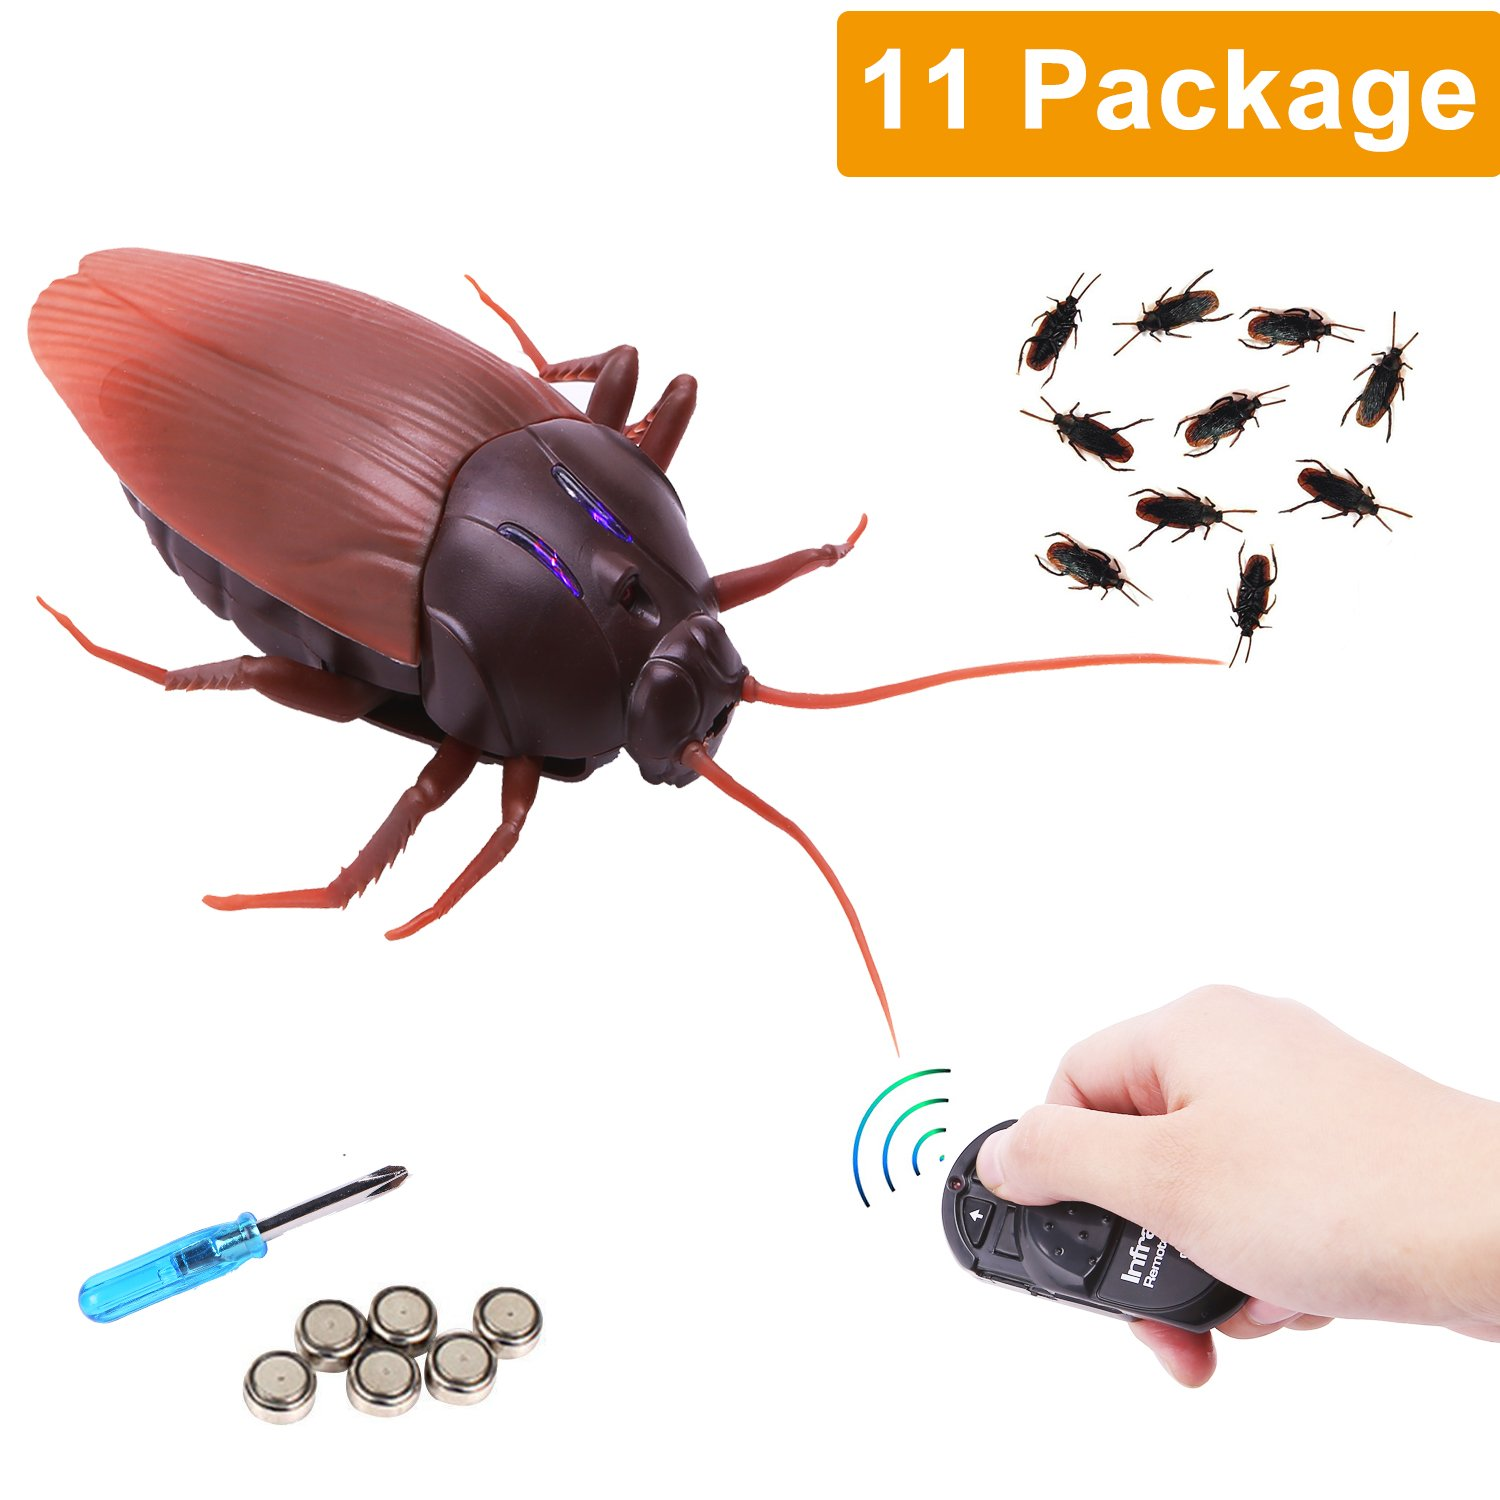 Amazon.com: RC Infrared Remote Control Cockroach, Novelty Fake ...